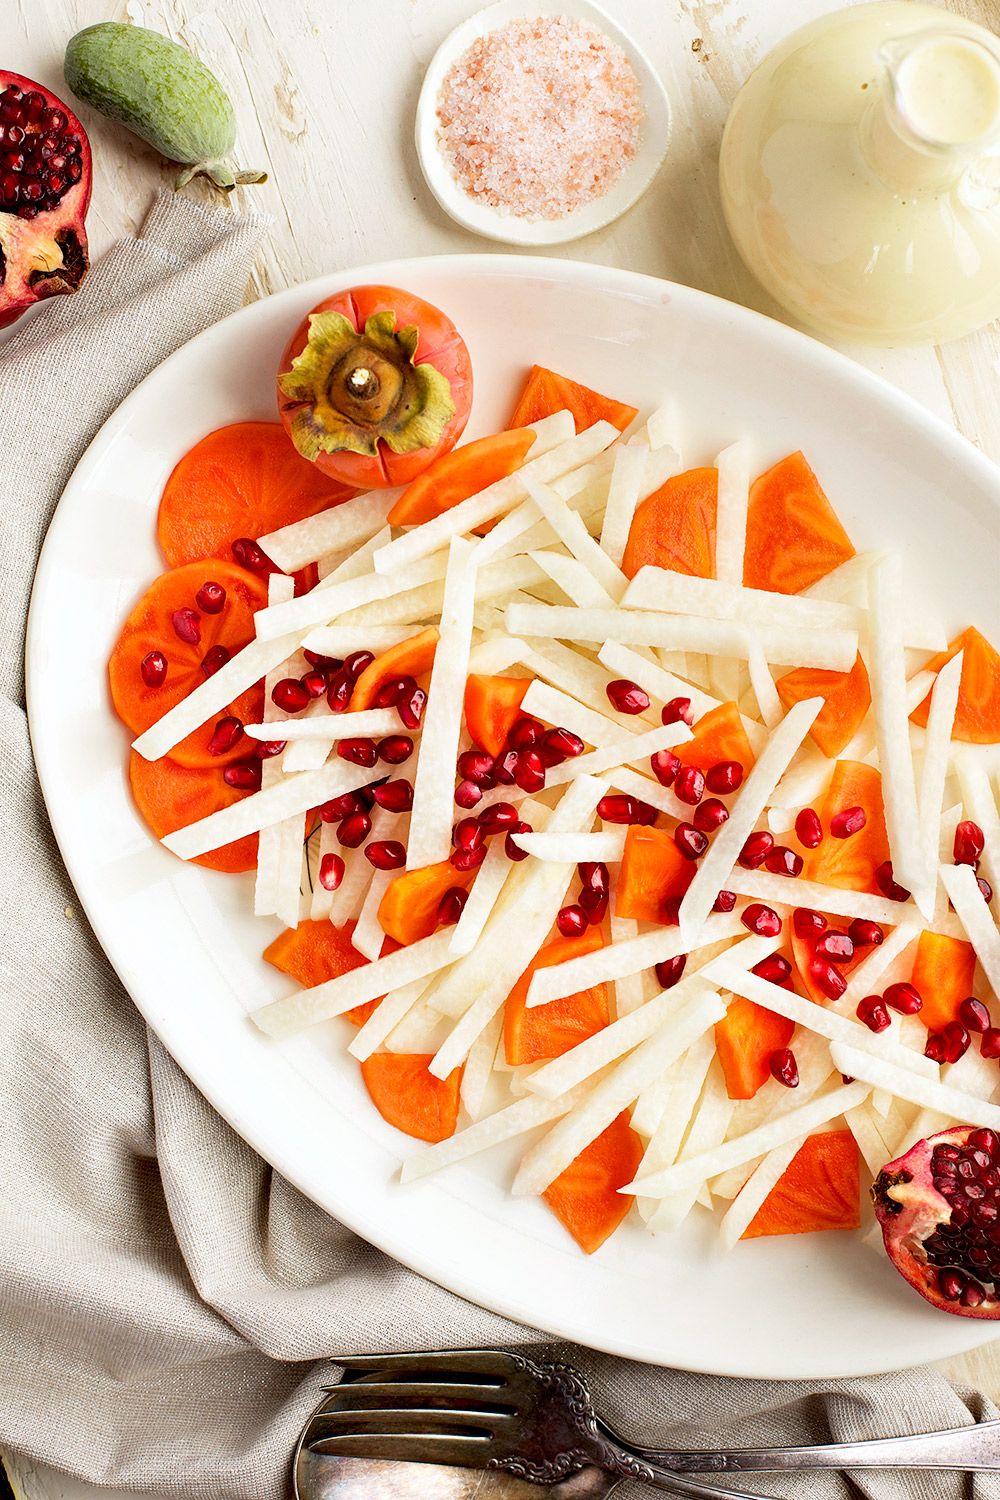 Jicama Persimmon Pomegranate Salad with Guava Chevre Vinaigrette